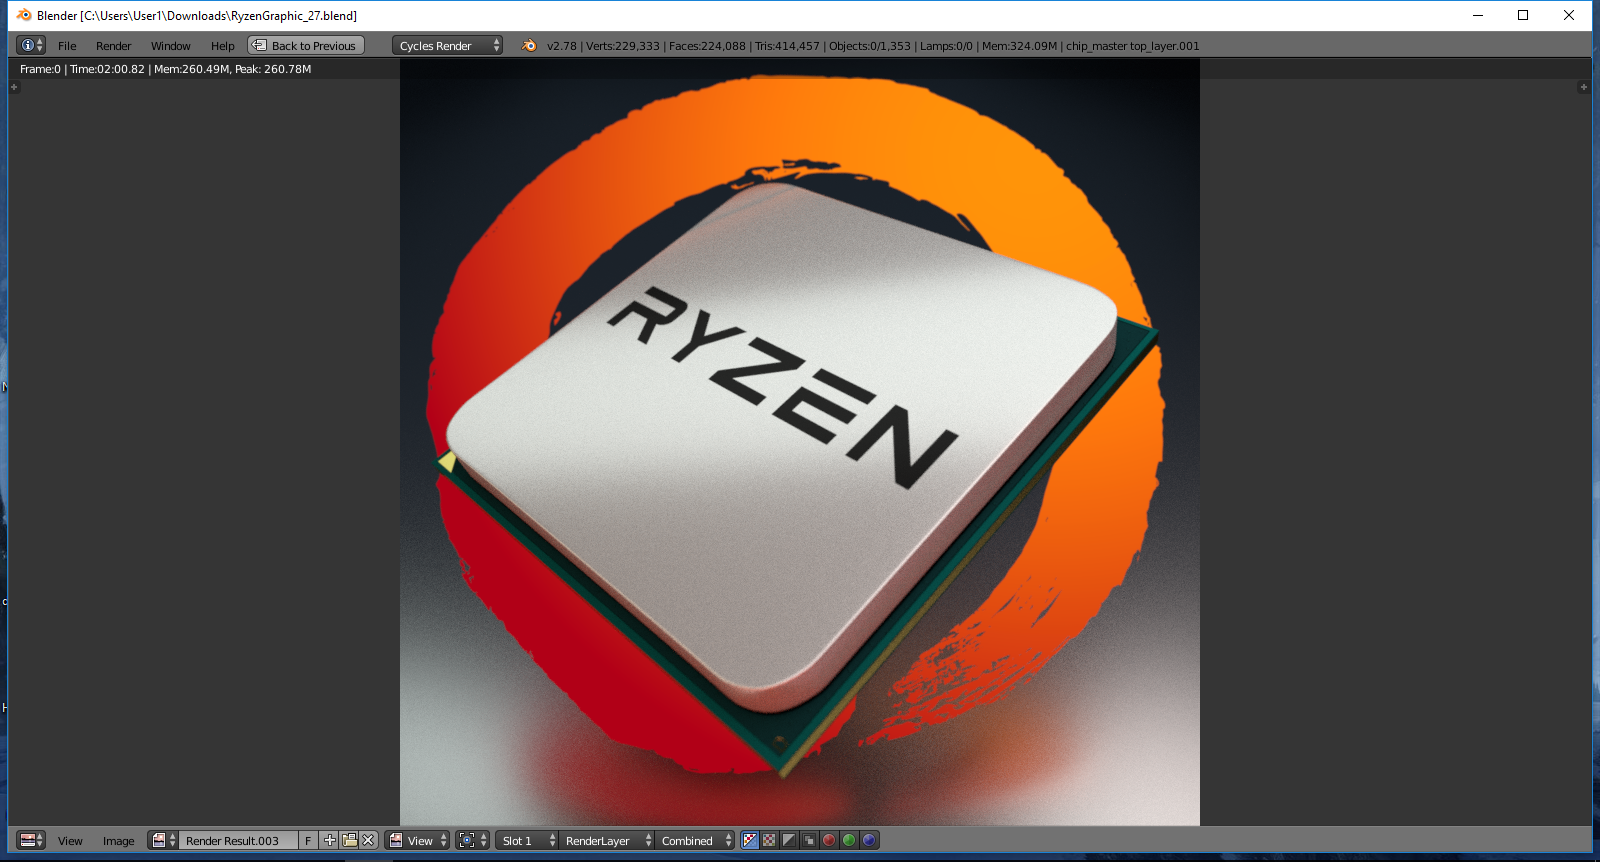 RyZen : Benchmark your CPU vs AMD RYZEN - CPU - Level1Techs